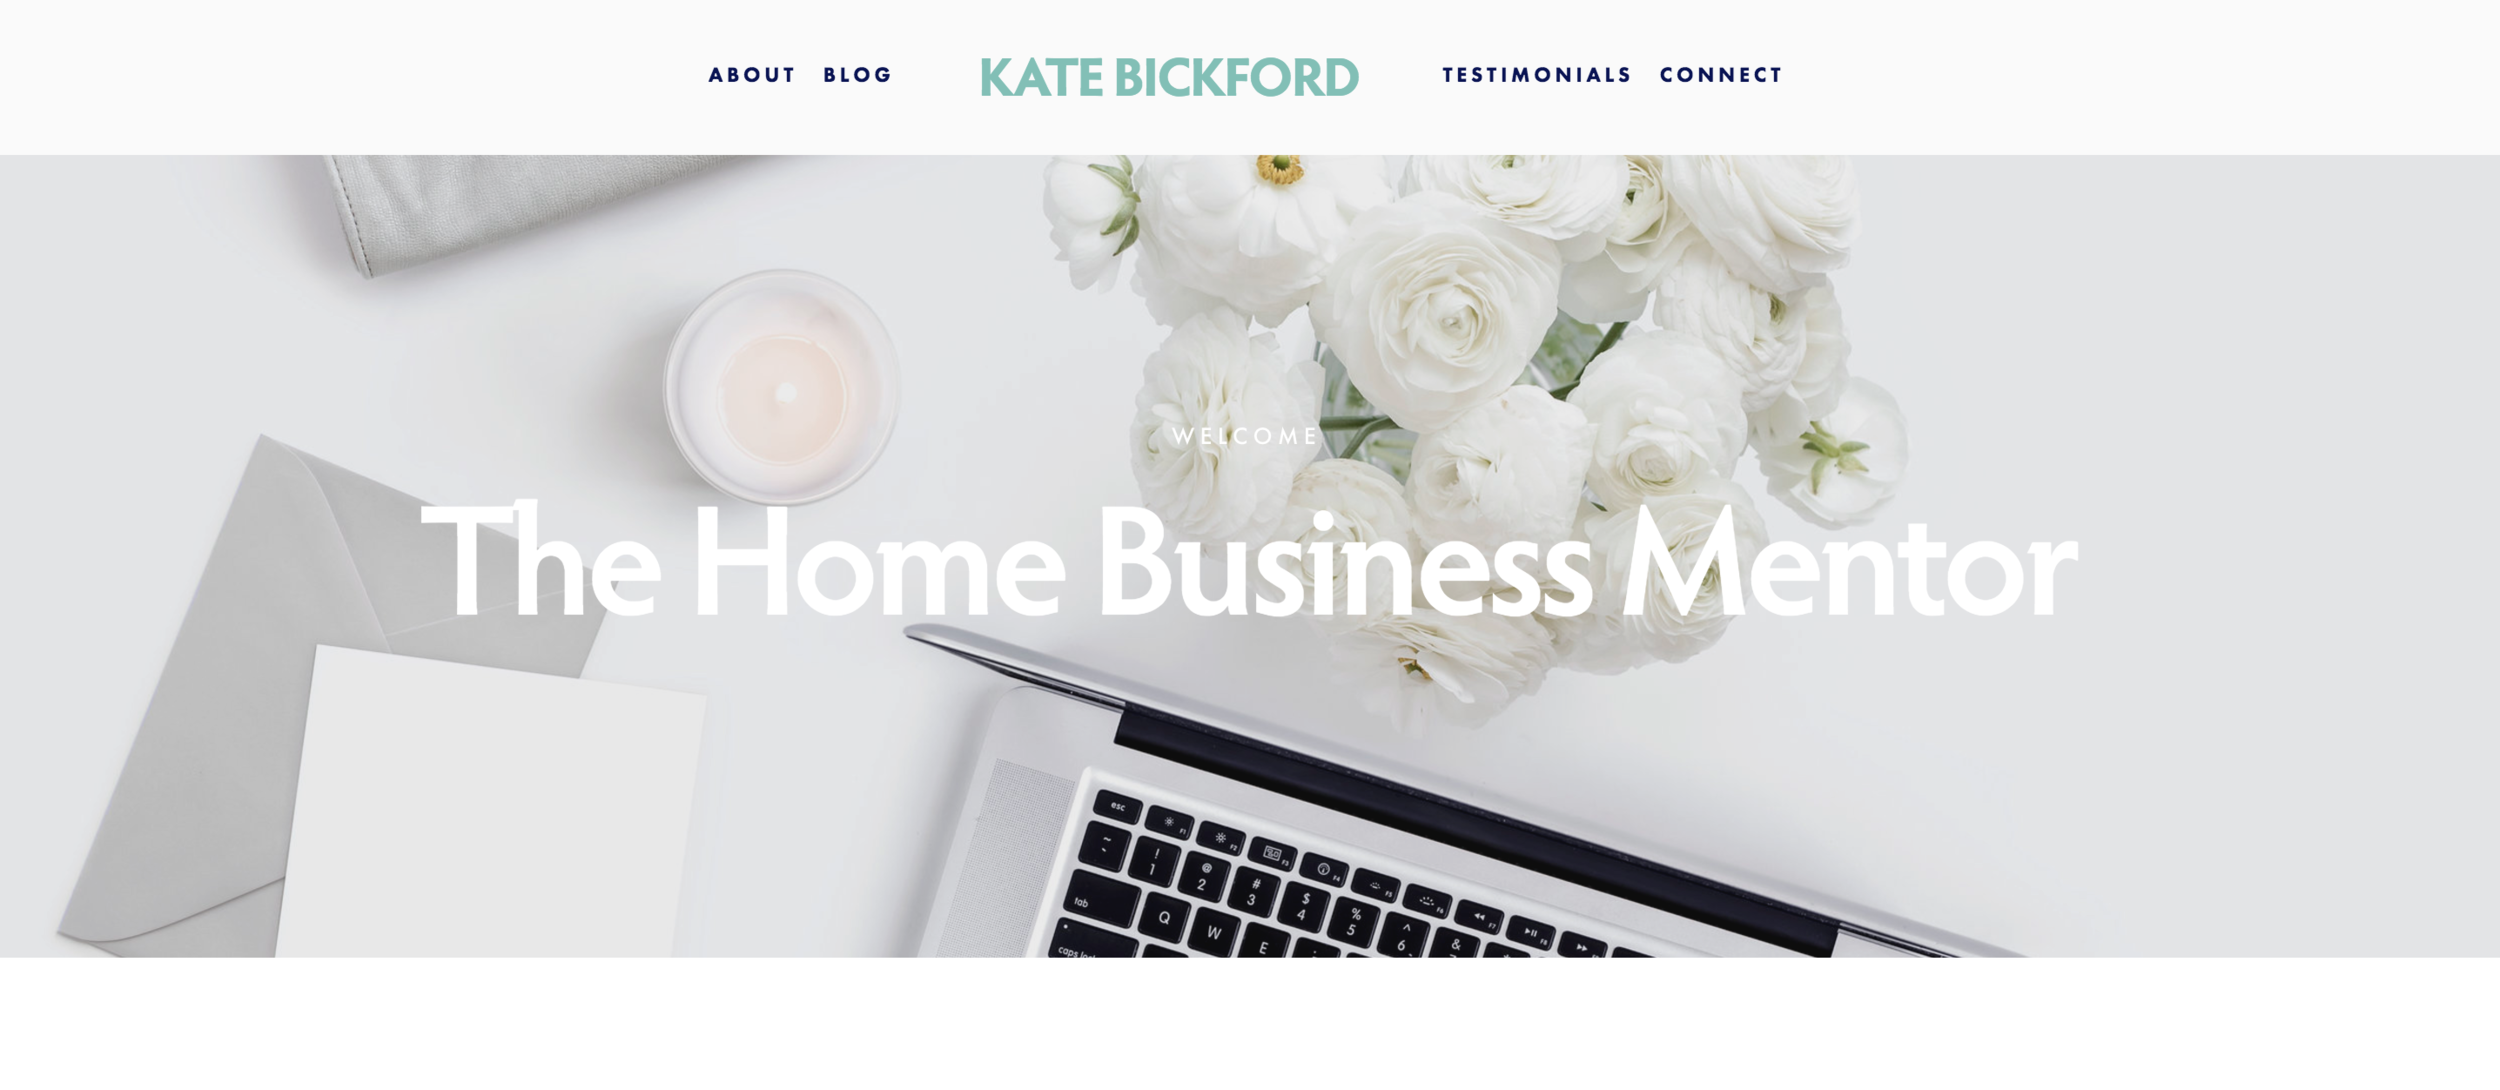 Kate Bickford - Kate needed a site that would showcase her love for being a Home Business Mentor. With pages explaining her business and strategies alongside a blog that keep her audience updated.